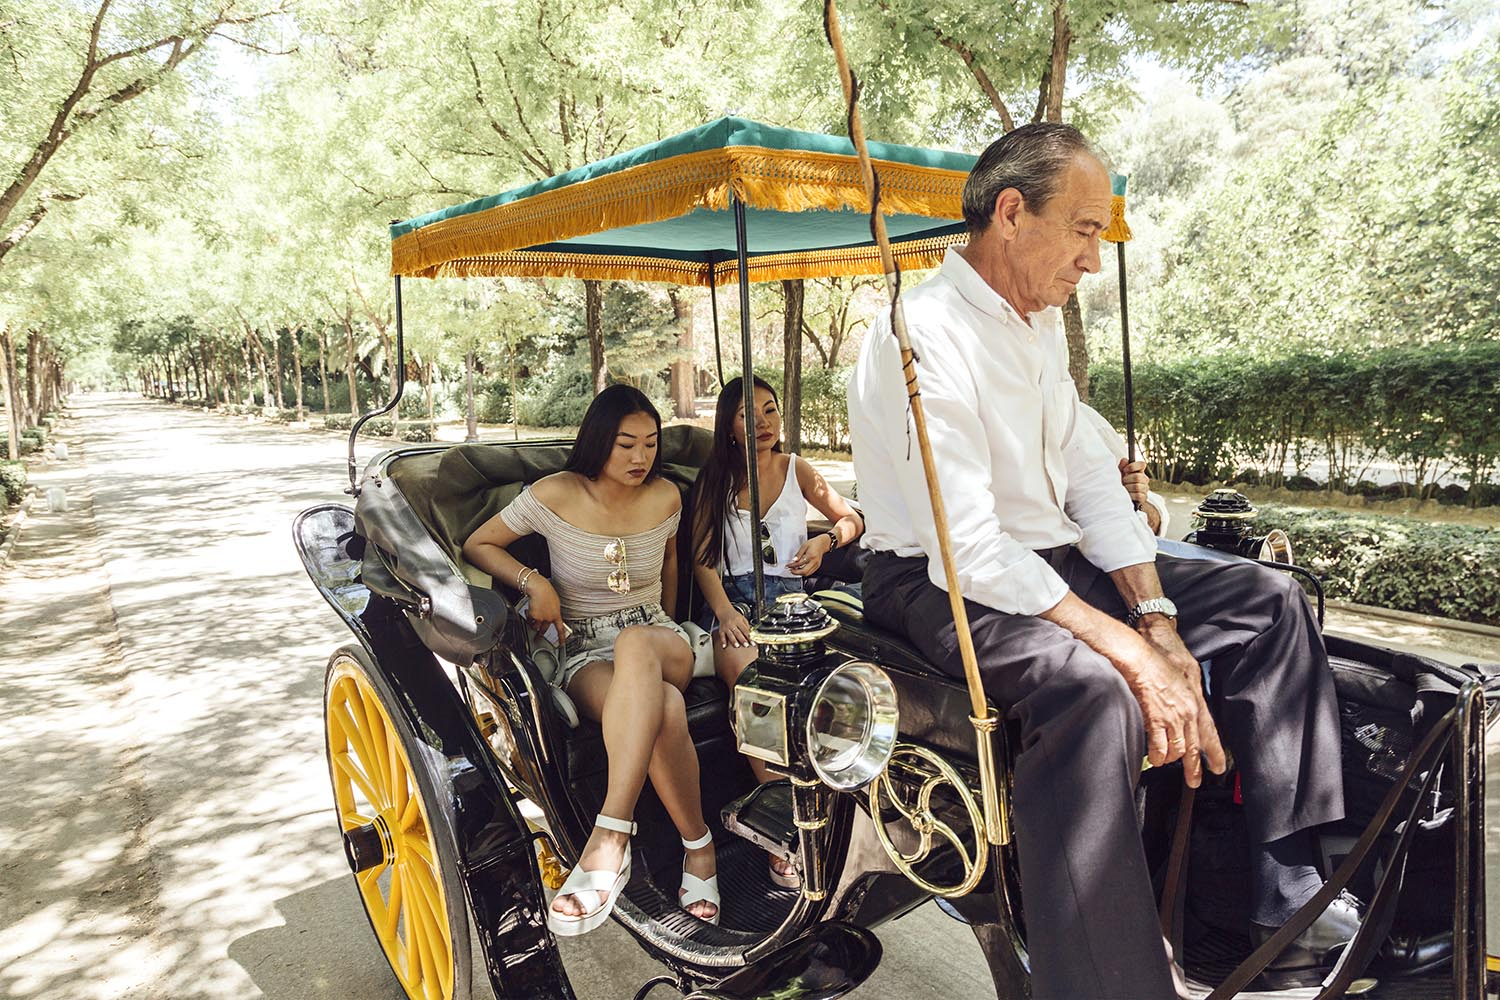 Chinese tourists riding in carriage